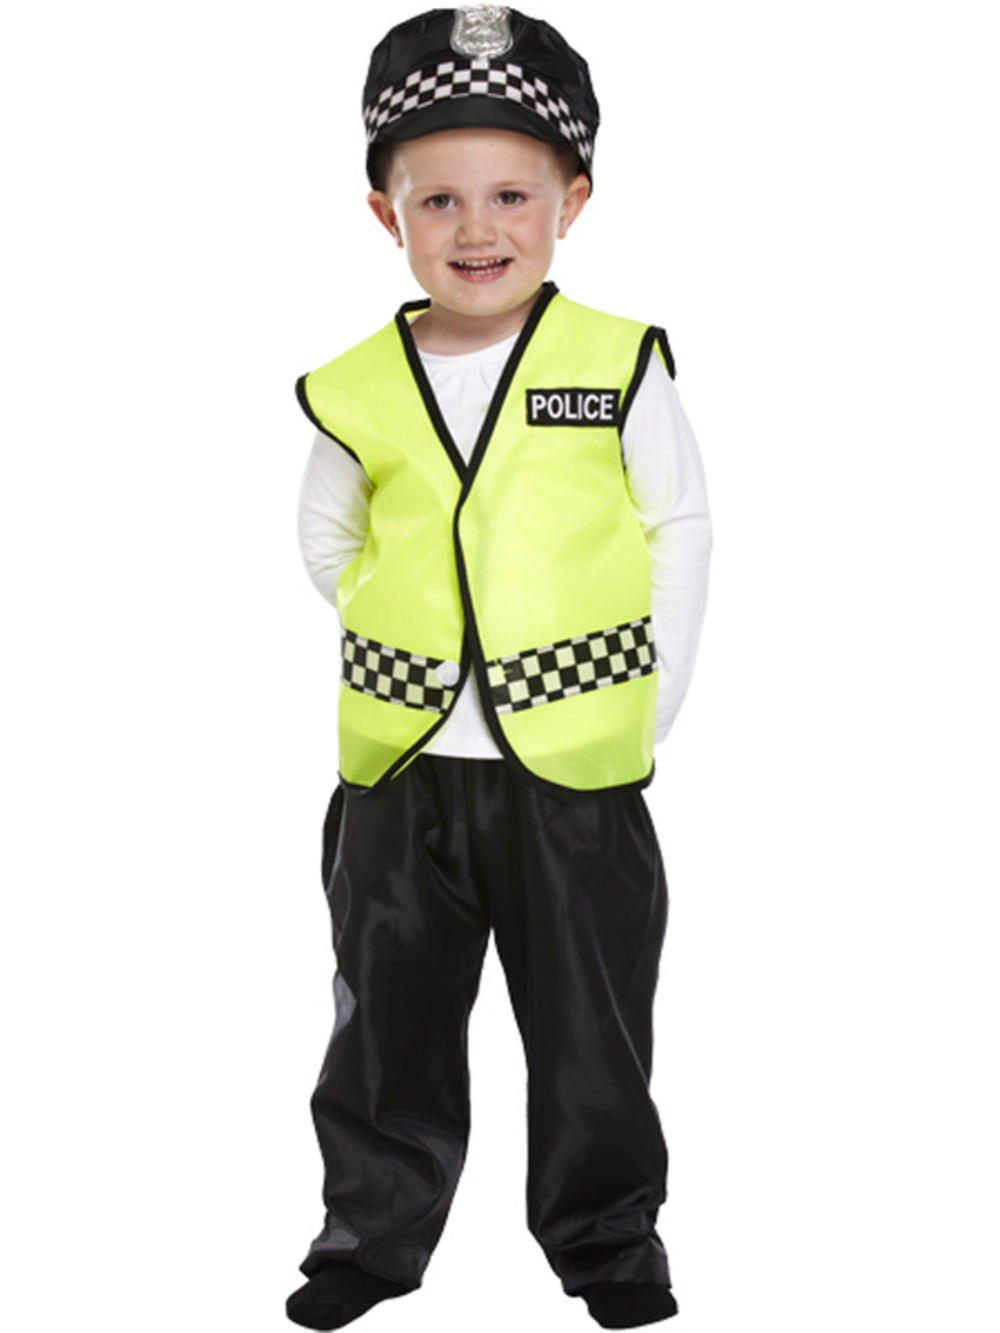 child new york cop new party fancy dress nypd police boy costume